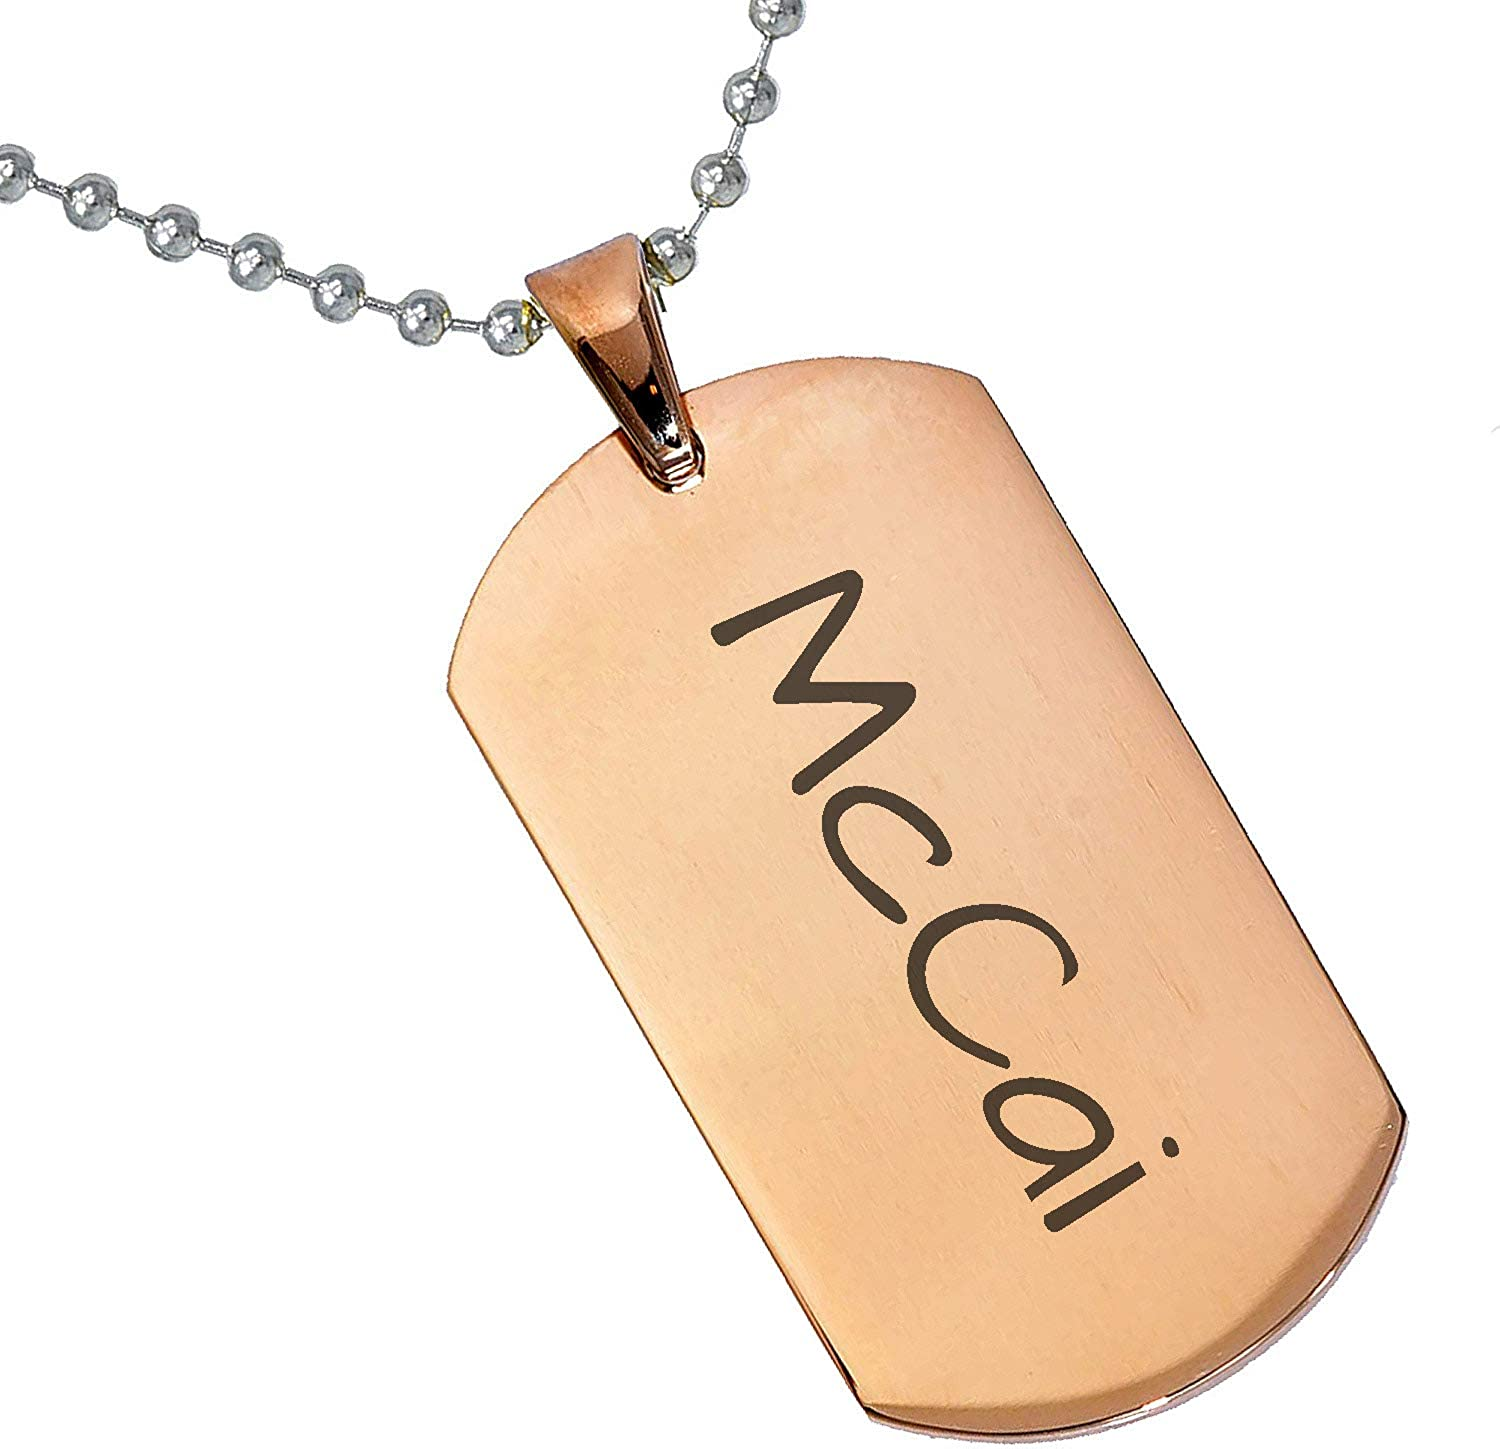 Stainless Steel Silver Gold Black Rose Gold Color Baby Name McCai Engraved Personalized Gifts For Son Daughter Boyfriend Girlfriend Initial Customizable Pendant Necklace Dog Tags 24 Ball Chain